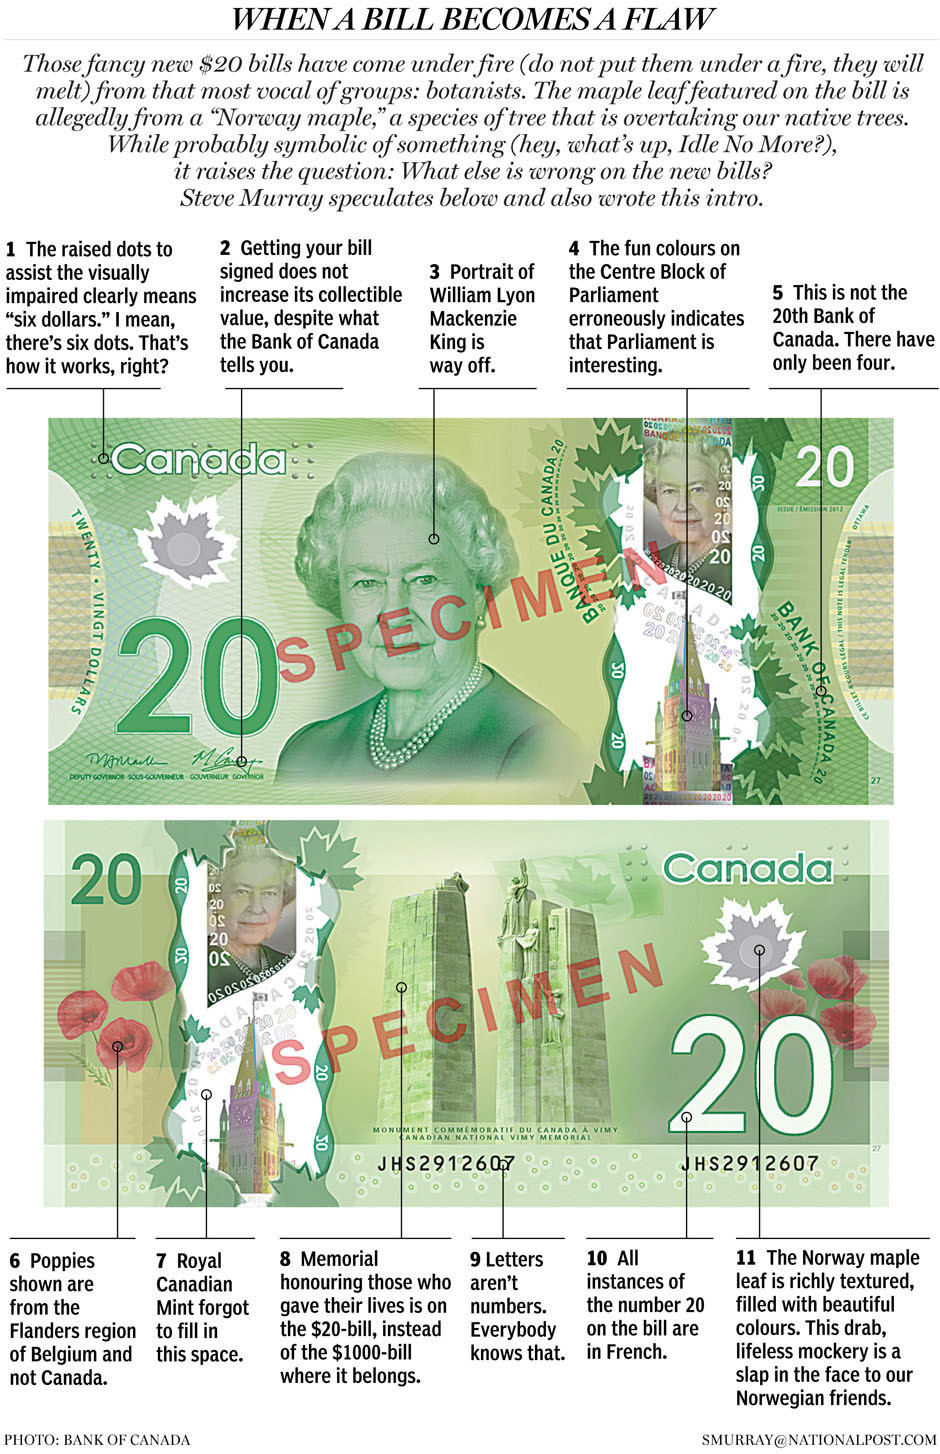 "nationalpost:  Canada's flawed bill: Our $20 bill depicts a non-native maple species. What else is wrong with it?When it unveiled its new paperless, plasticized $20 bills in May 2012, the Bank of Canada touted its high-tech anti-counterfeiting technology. ""This new $20 note fits the bill,"" they said. Ha ha! Nice pun. Too bad they didn't mention that little problem with them melting. There have been other complaints too. The Post's Steve Murray investigates."